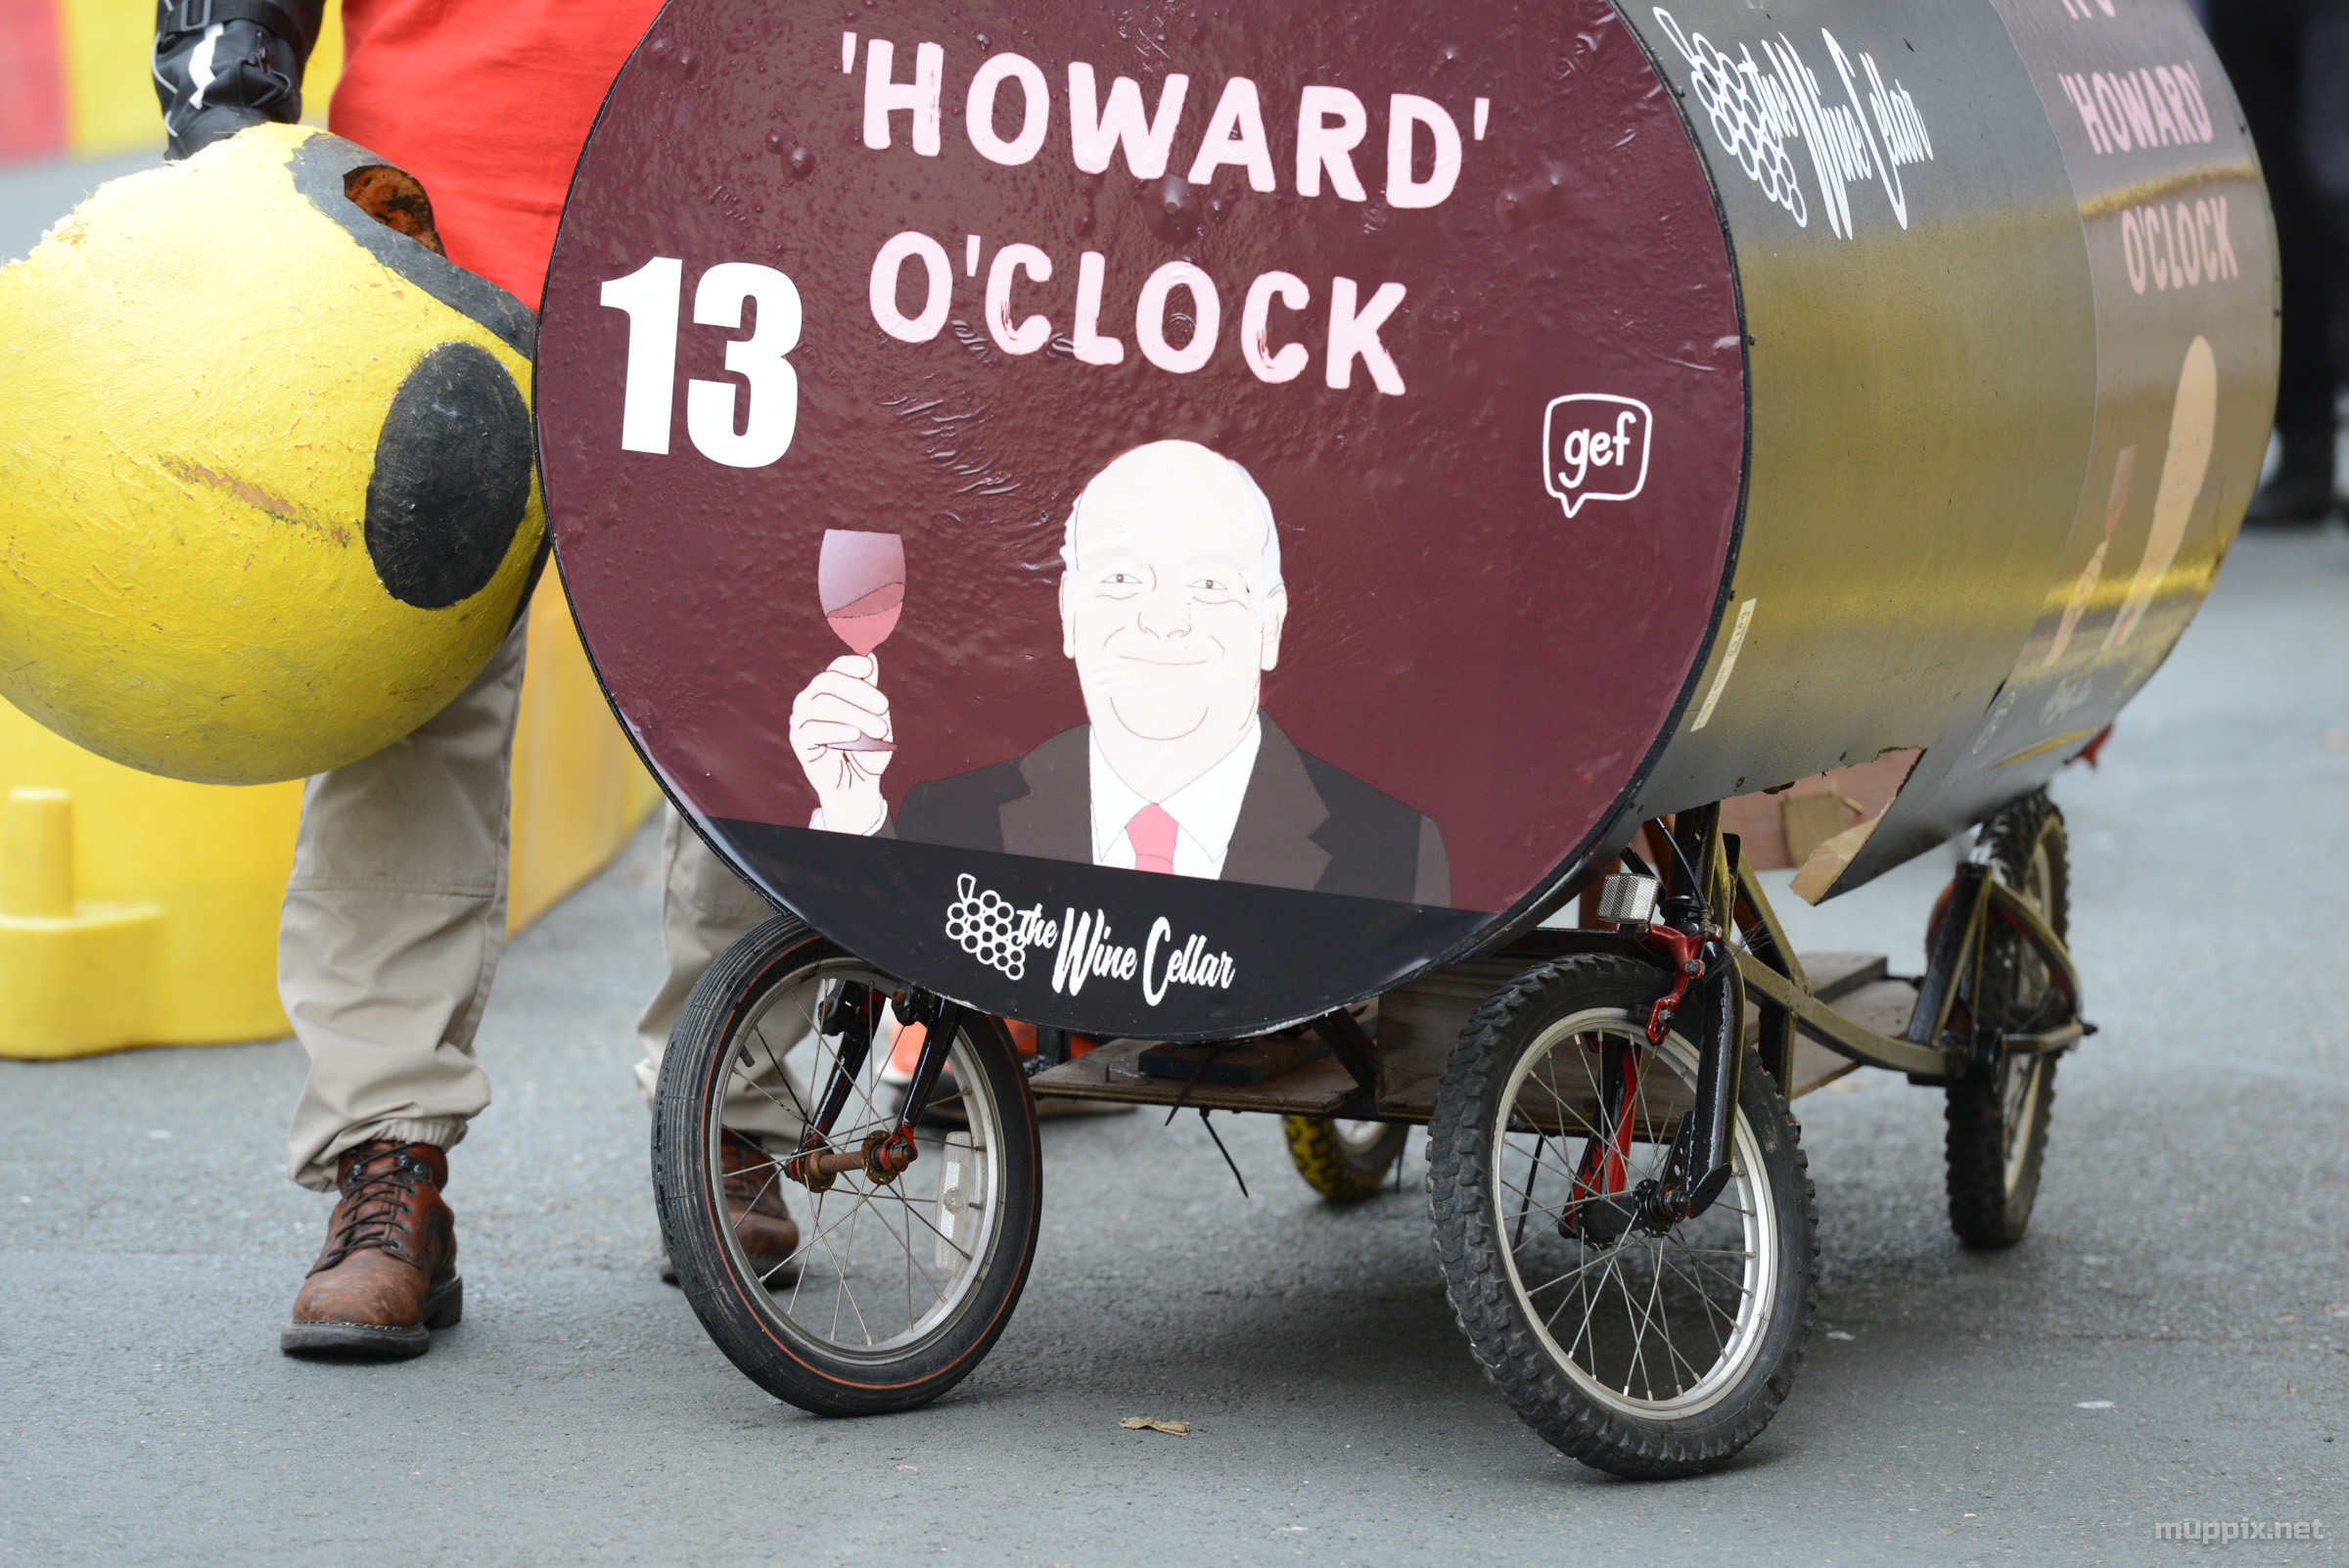 Detail image of one soapbox showing sketch of Howard Quayle, Chief Minister